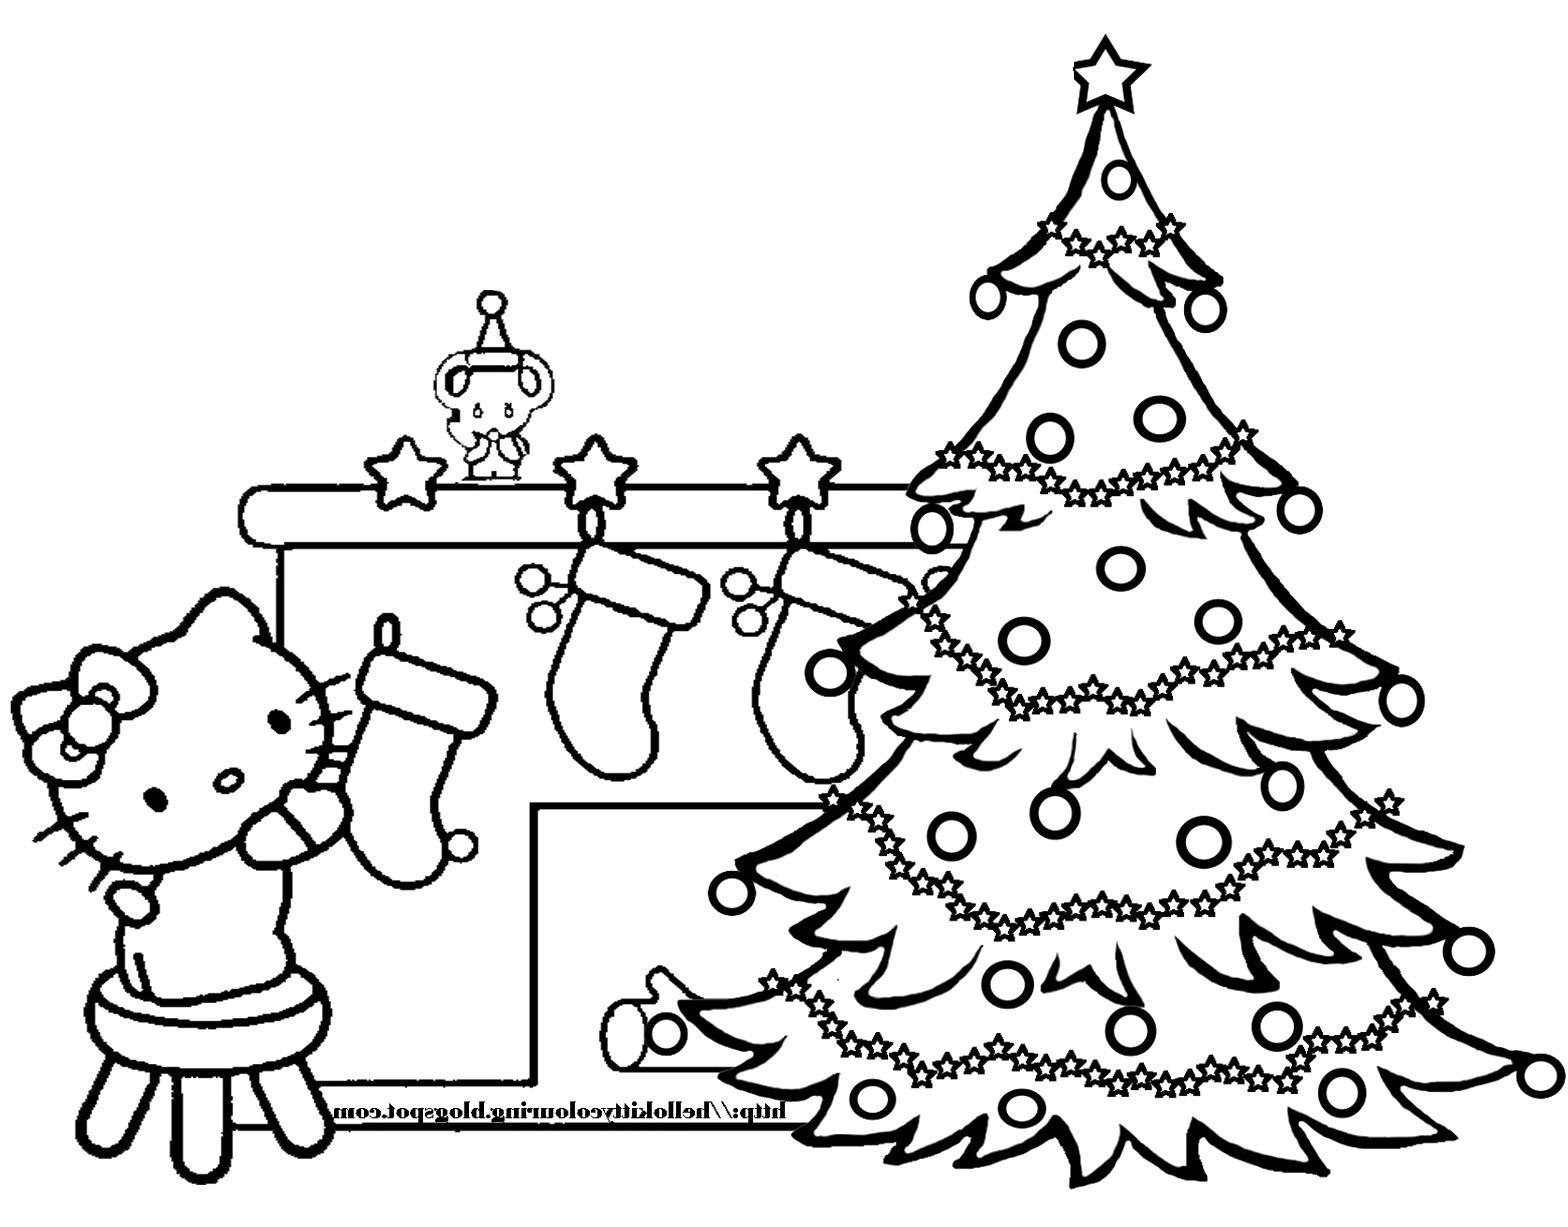 1568x1227 Christmas Tree Drawing 2017 Best Template Idea